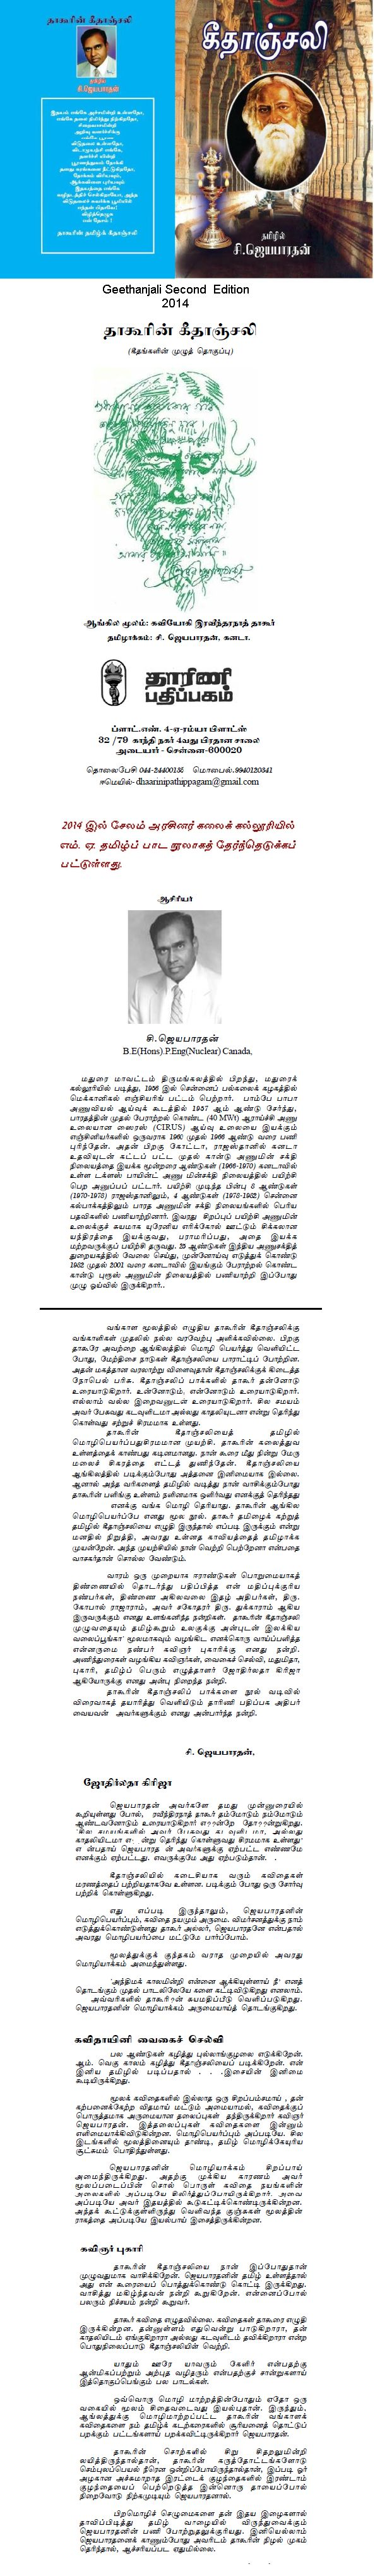 Geethanjali Second Edition Publication 2014 (1)